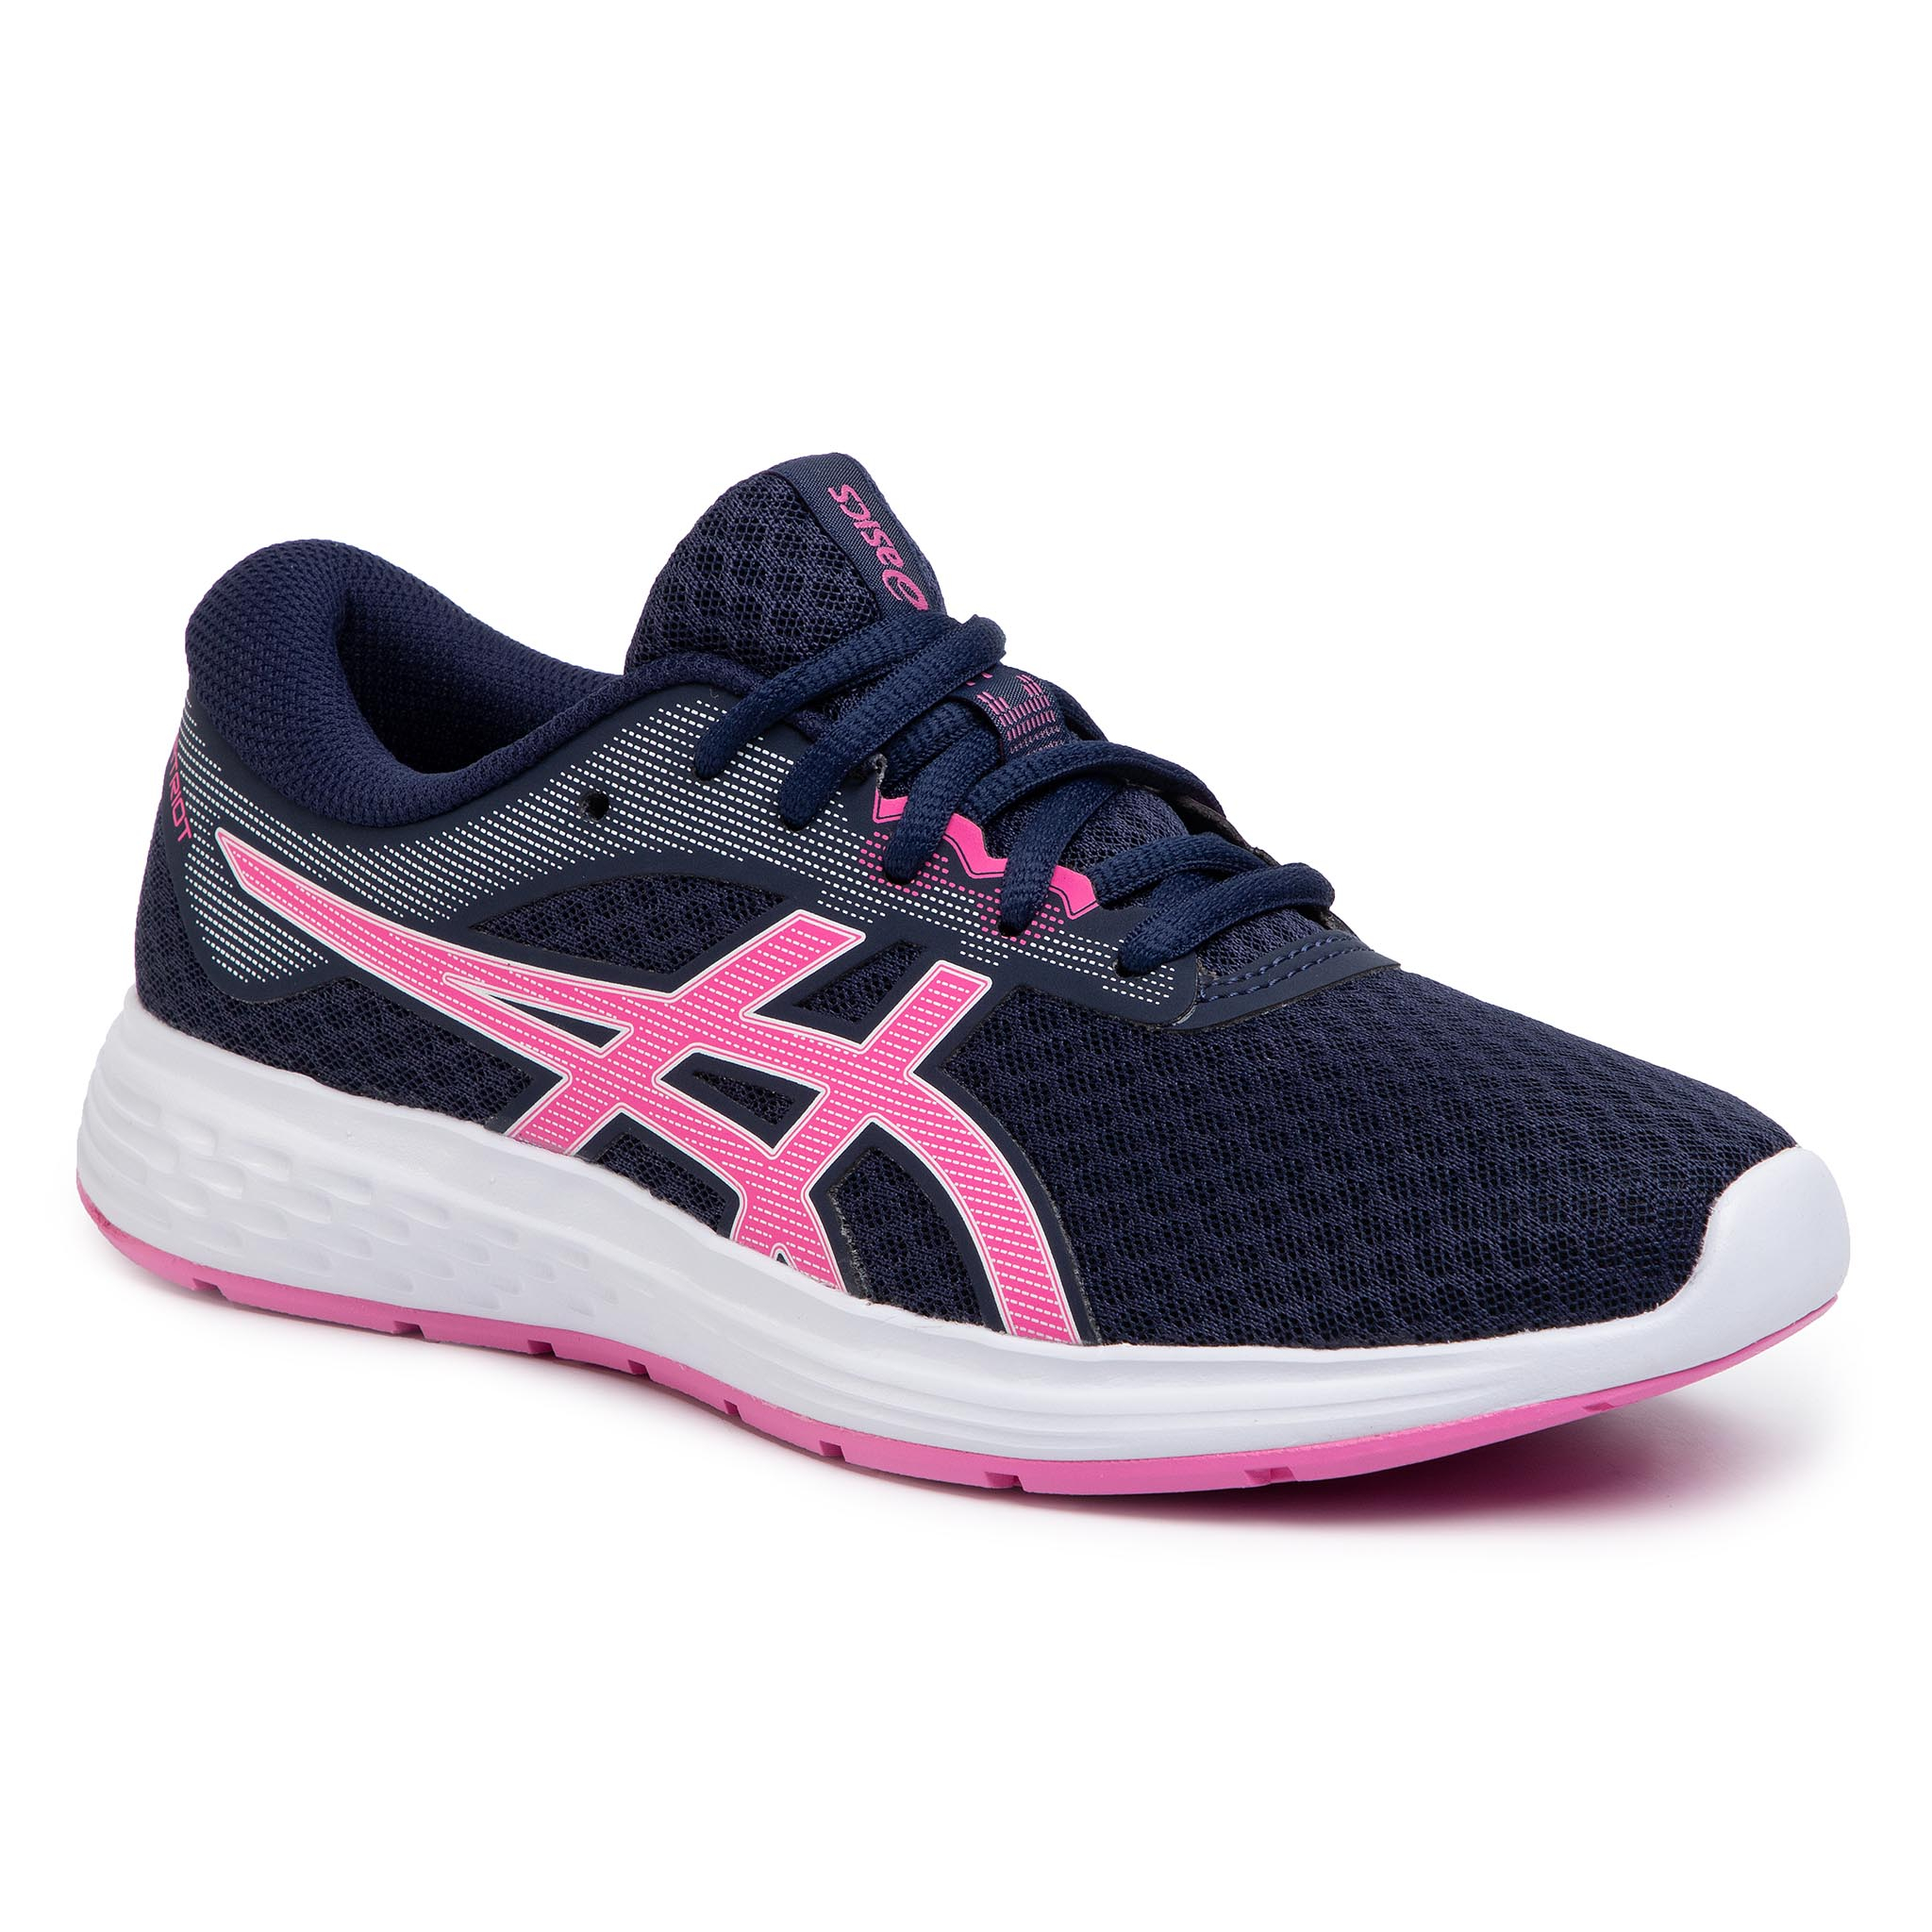 Zapatos ASICS - Patriot 11 GS 1014A070  Peacoat/Dragon Fruit 402